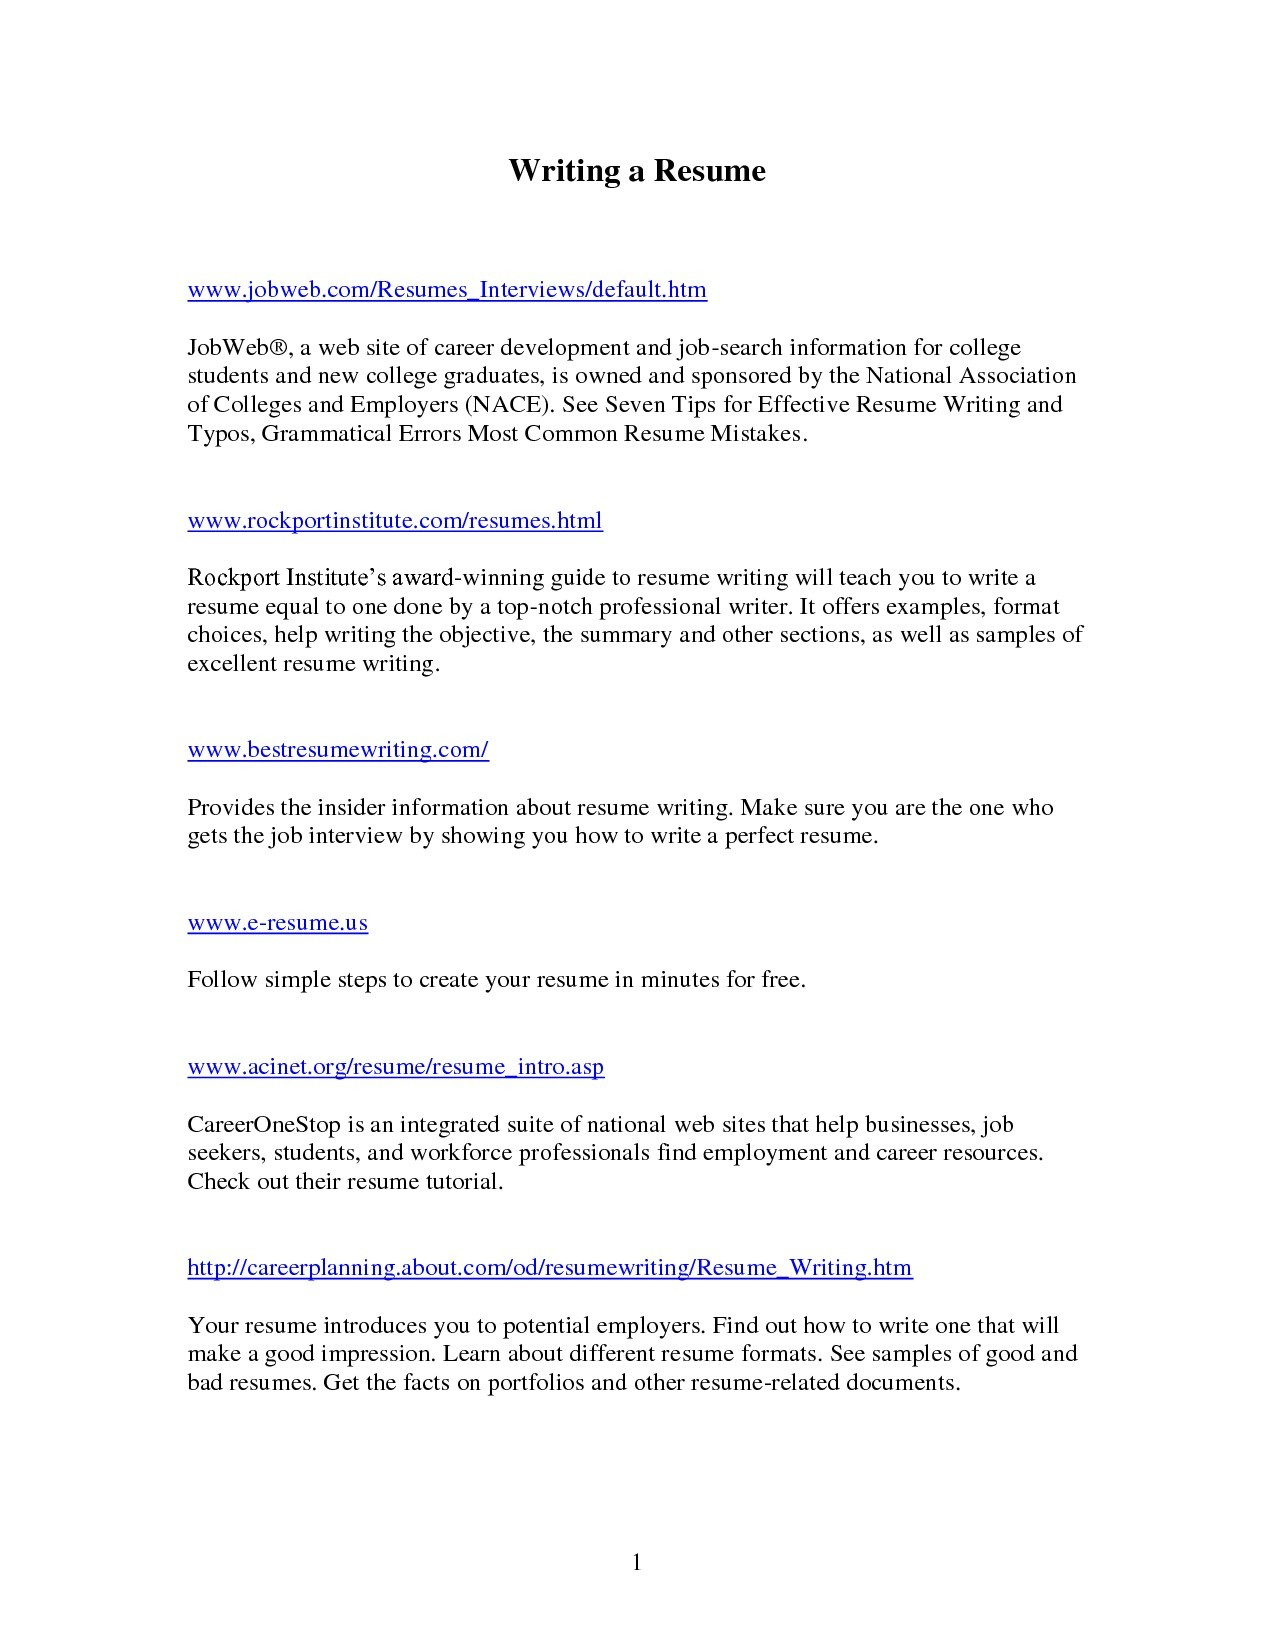 Free Business Letter format Template - Business Writing Templates Fresh Inspirational Business Letter